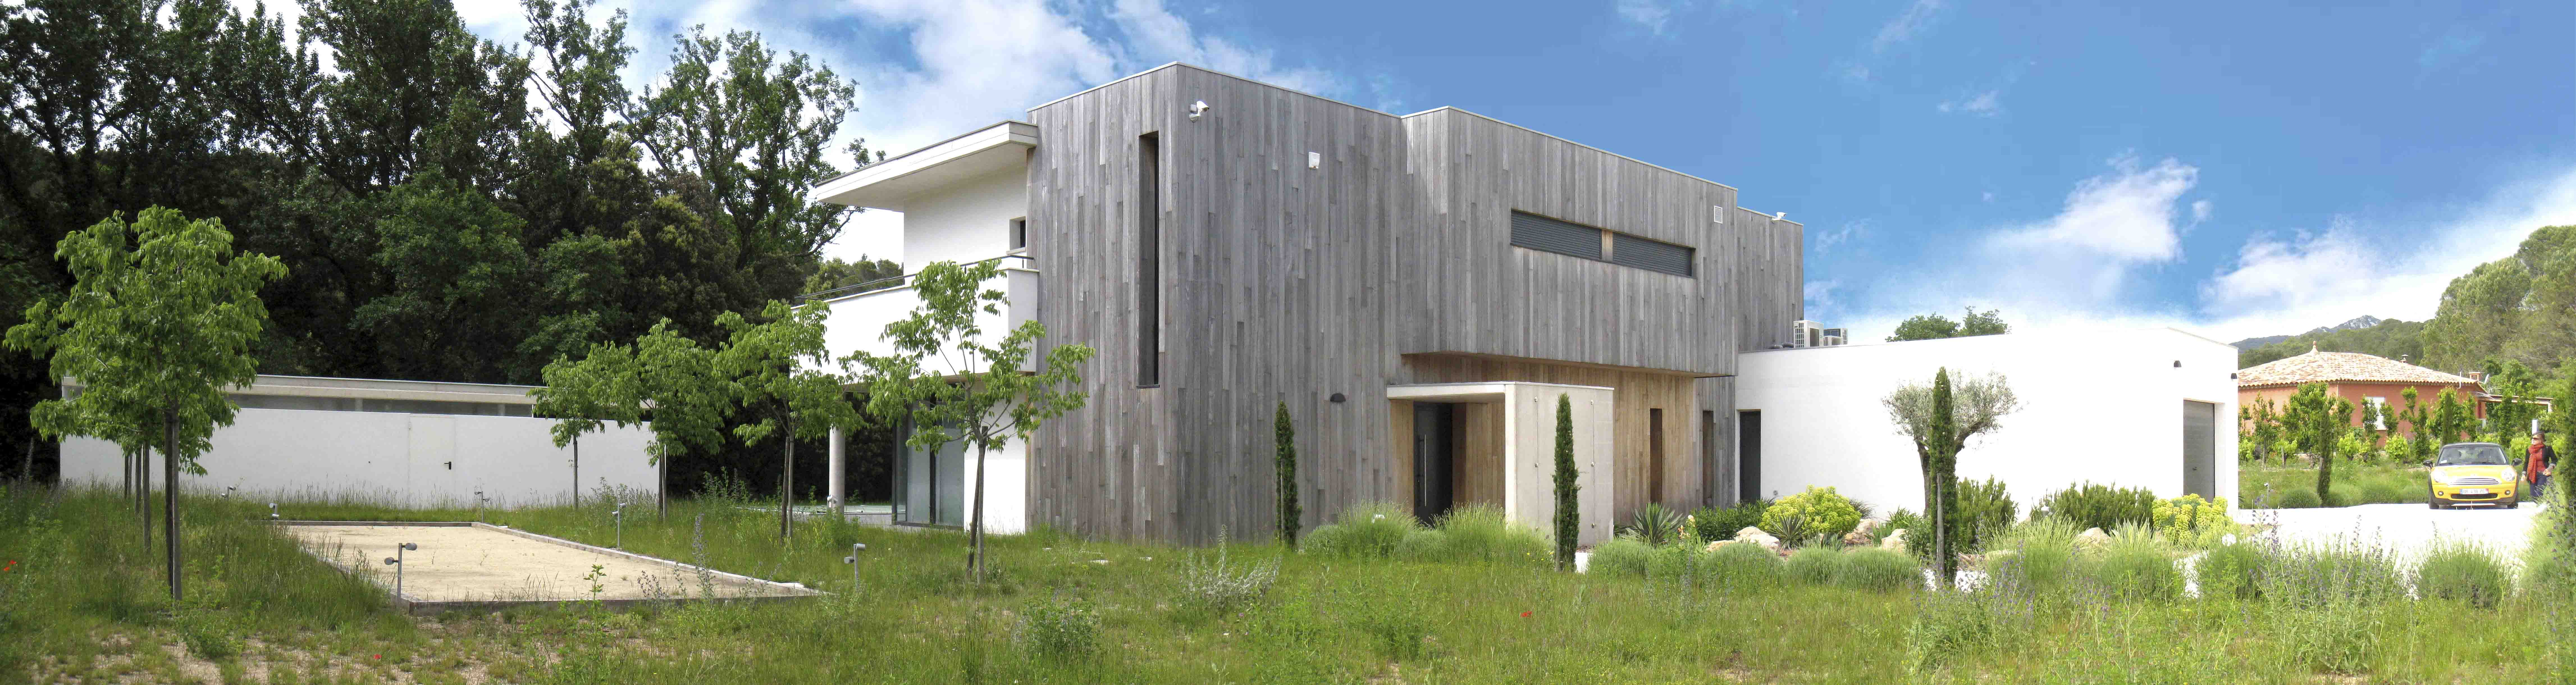 Maison individuelle Clermont herault BF Architecture 1